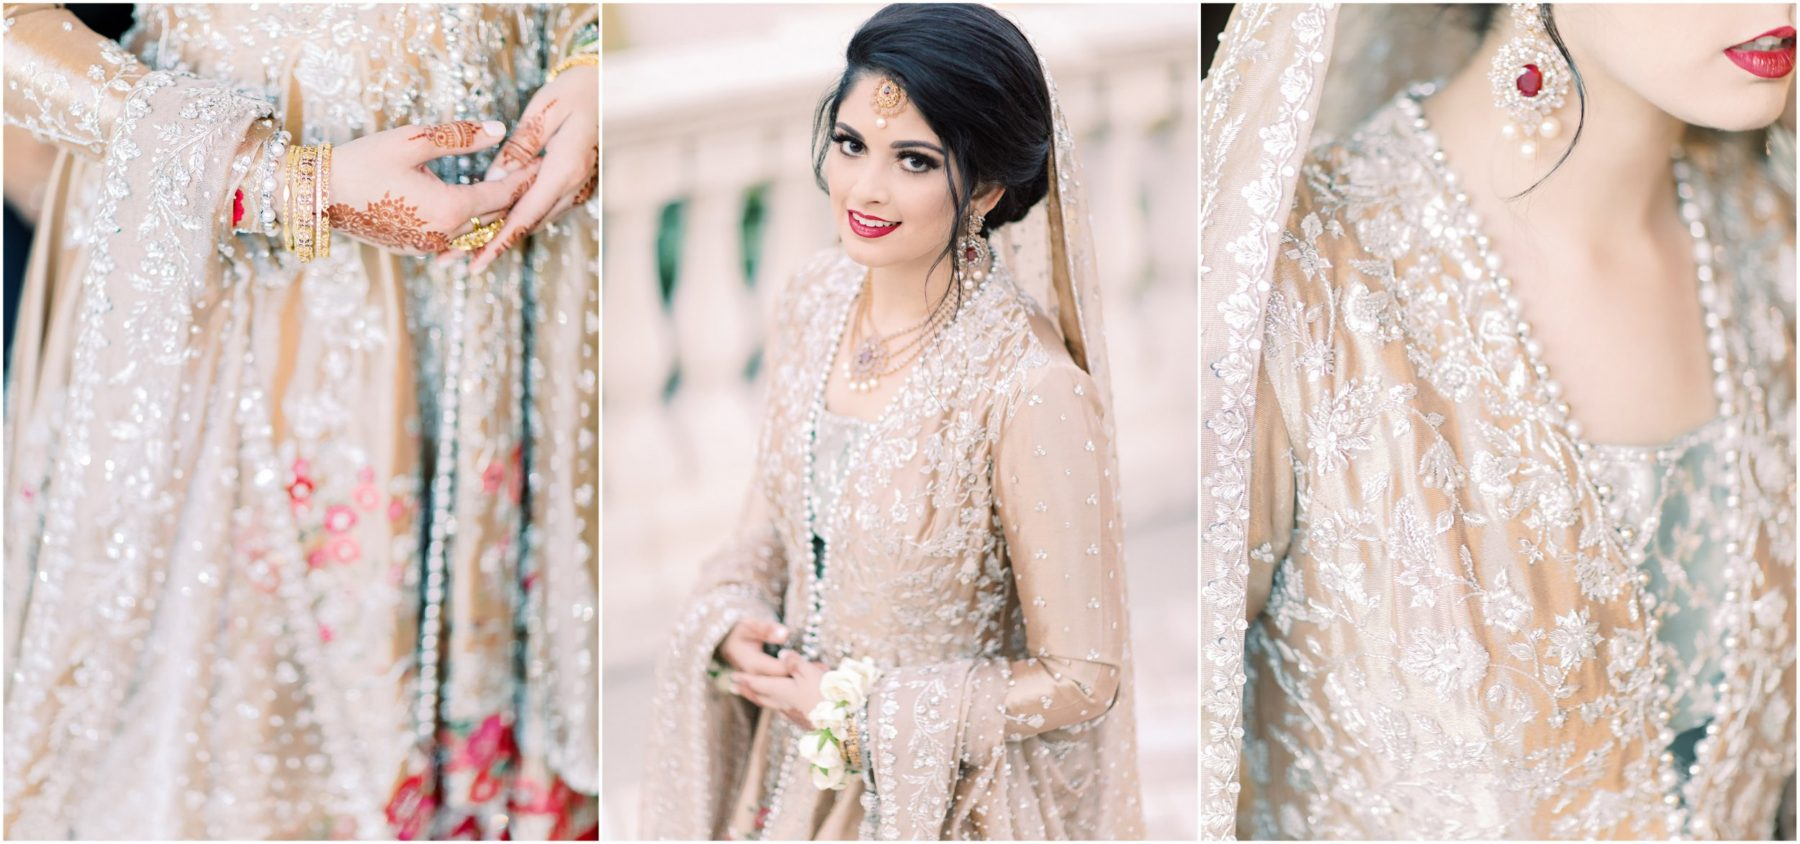 How to hire your wedding photographer? What to look for when you want to pick your wedding photographer?, Miami Wedding Photographers | Häring Photography, Indian Wedding Photographer in Florida, Best Muslim, Hindu - South East Asian Wedding Photographers